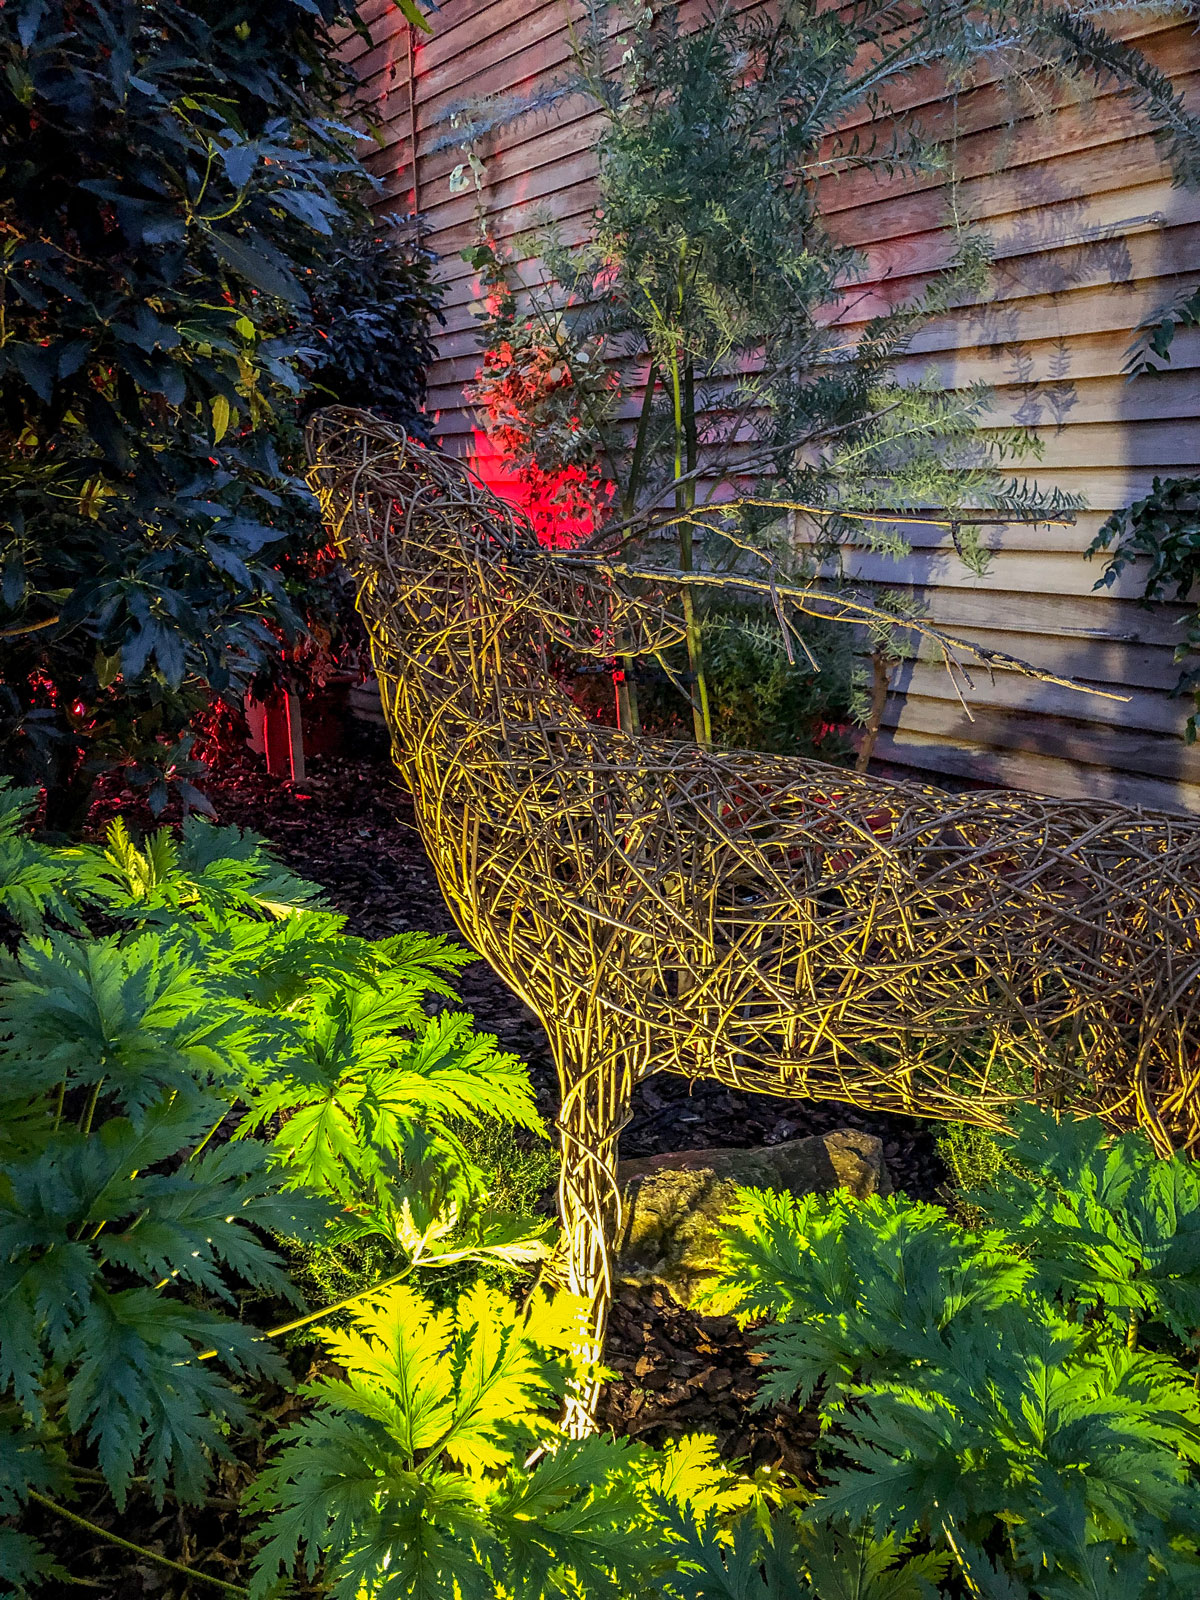 RHS Wisley Glow 2018 reindeer in the glasshouse. Christmas at the Royal Horticultural Society's Wisley.